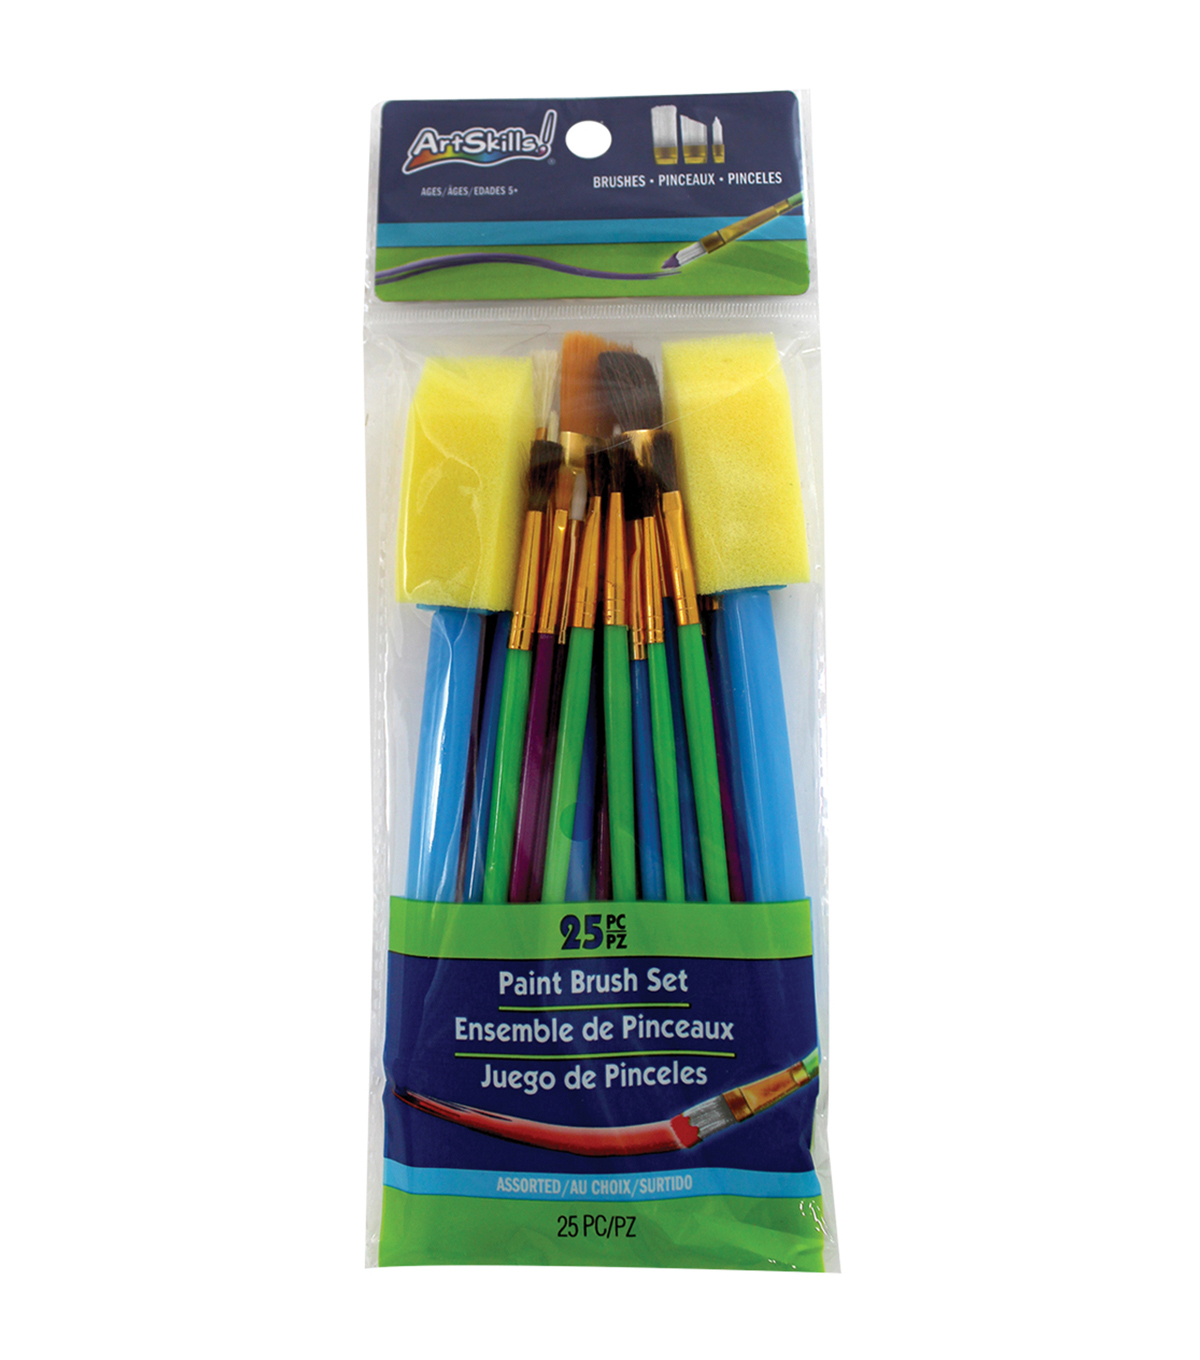 Artskills® 25pcs Paint Brush Set